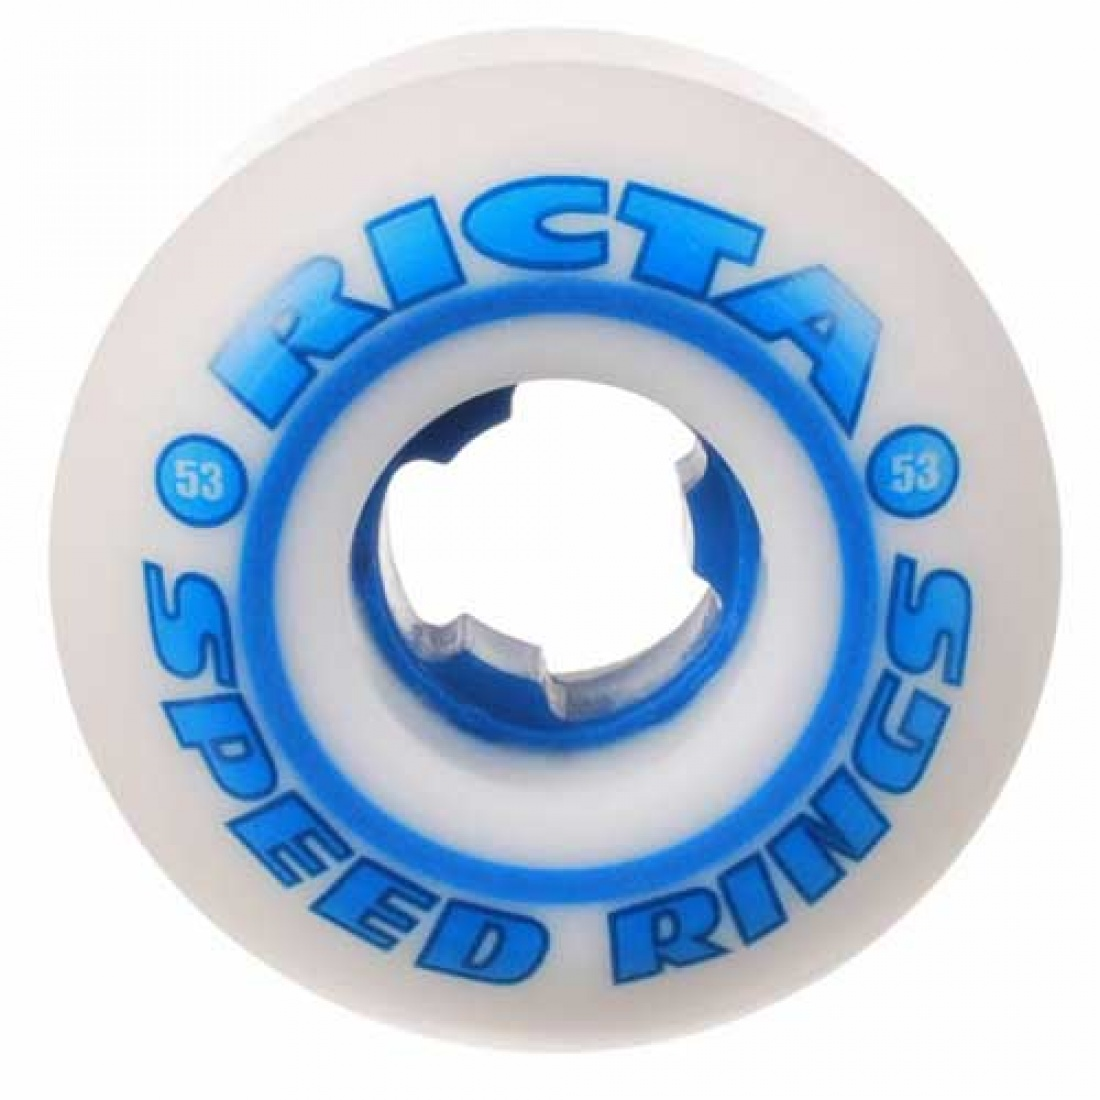 RCA-Speedrings 81b White/Blue 53mm (Set of 4)